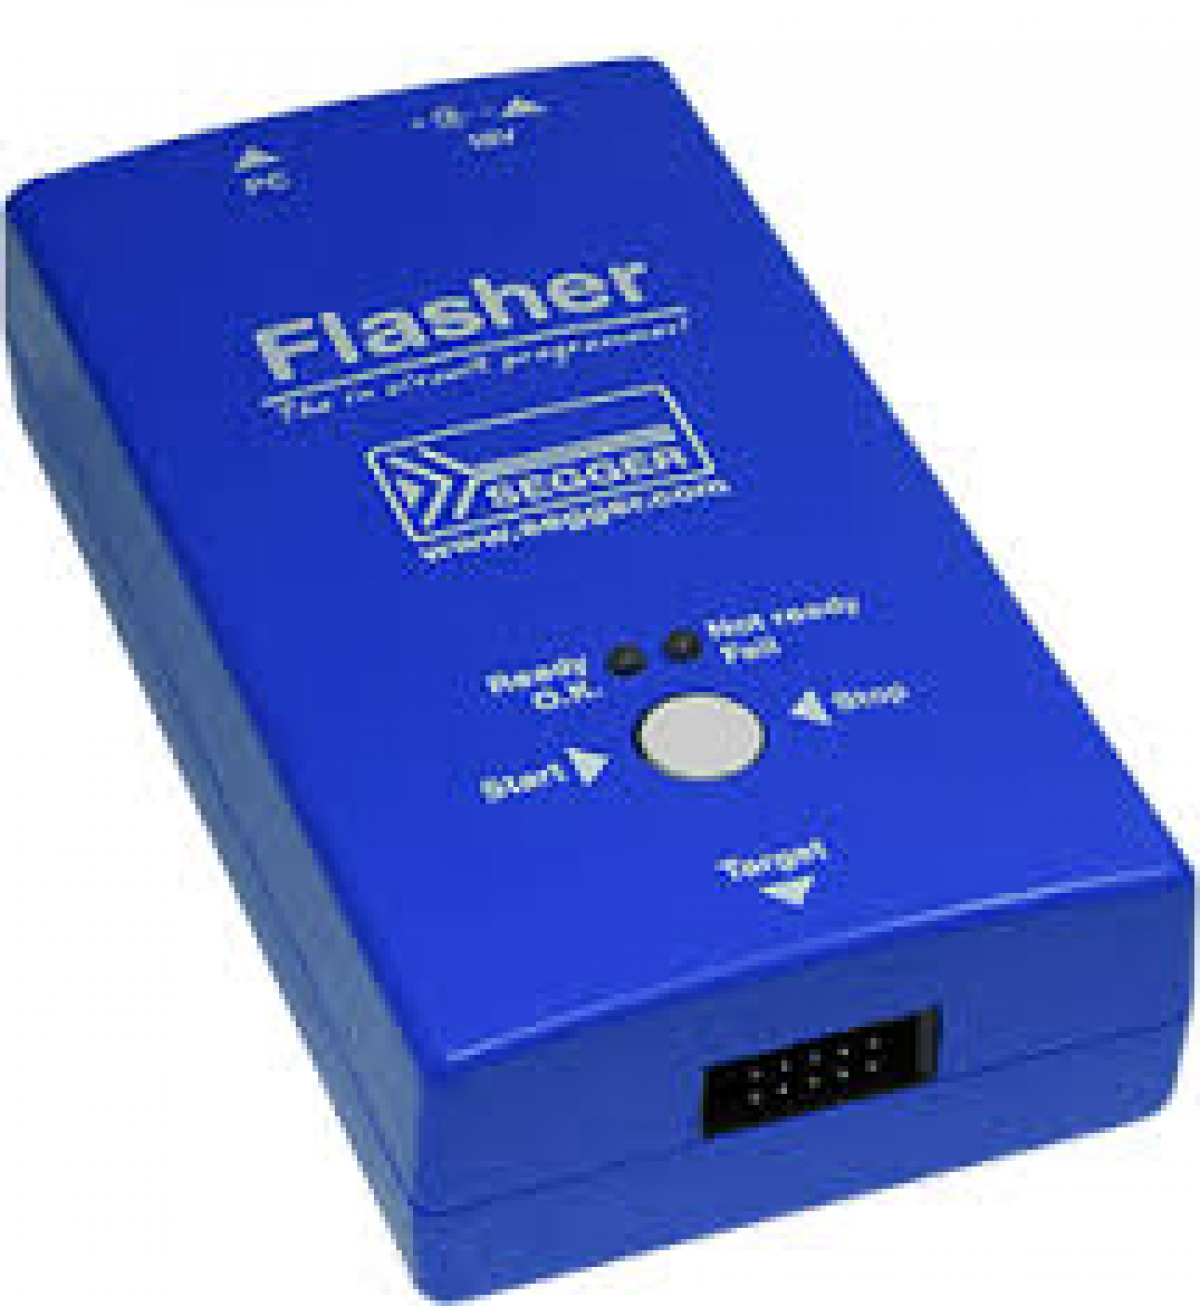 Flasher5